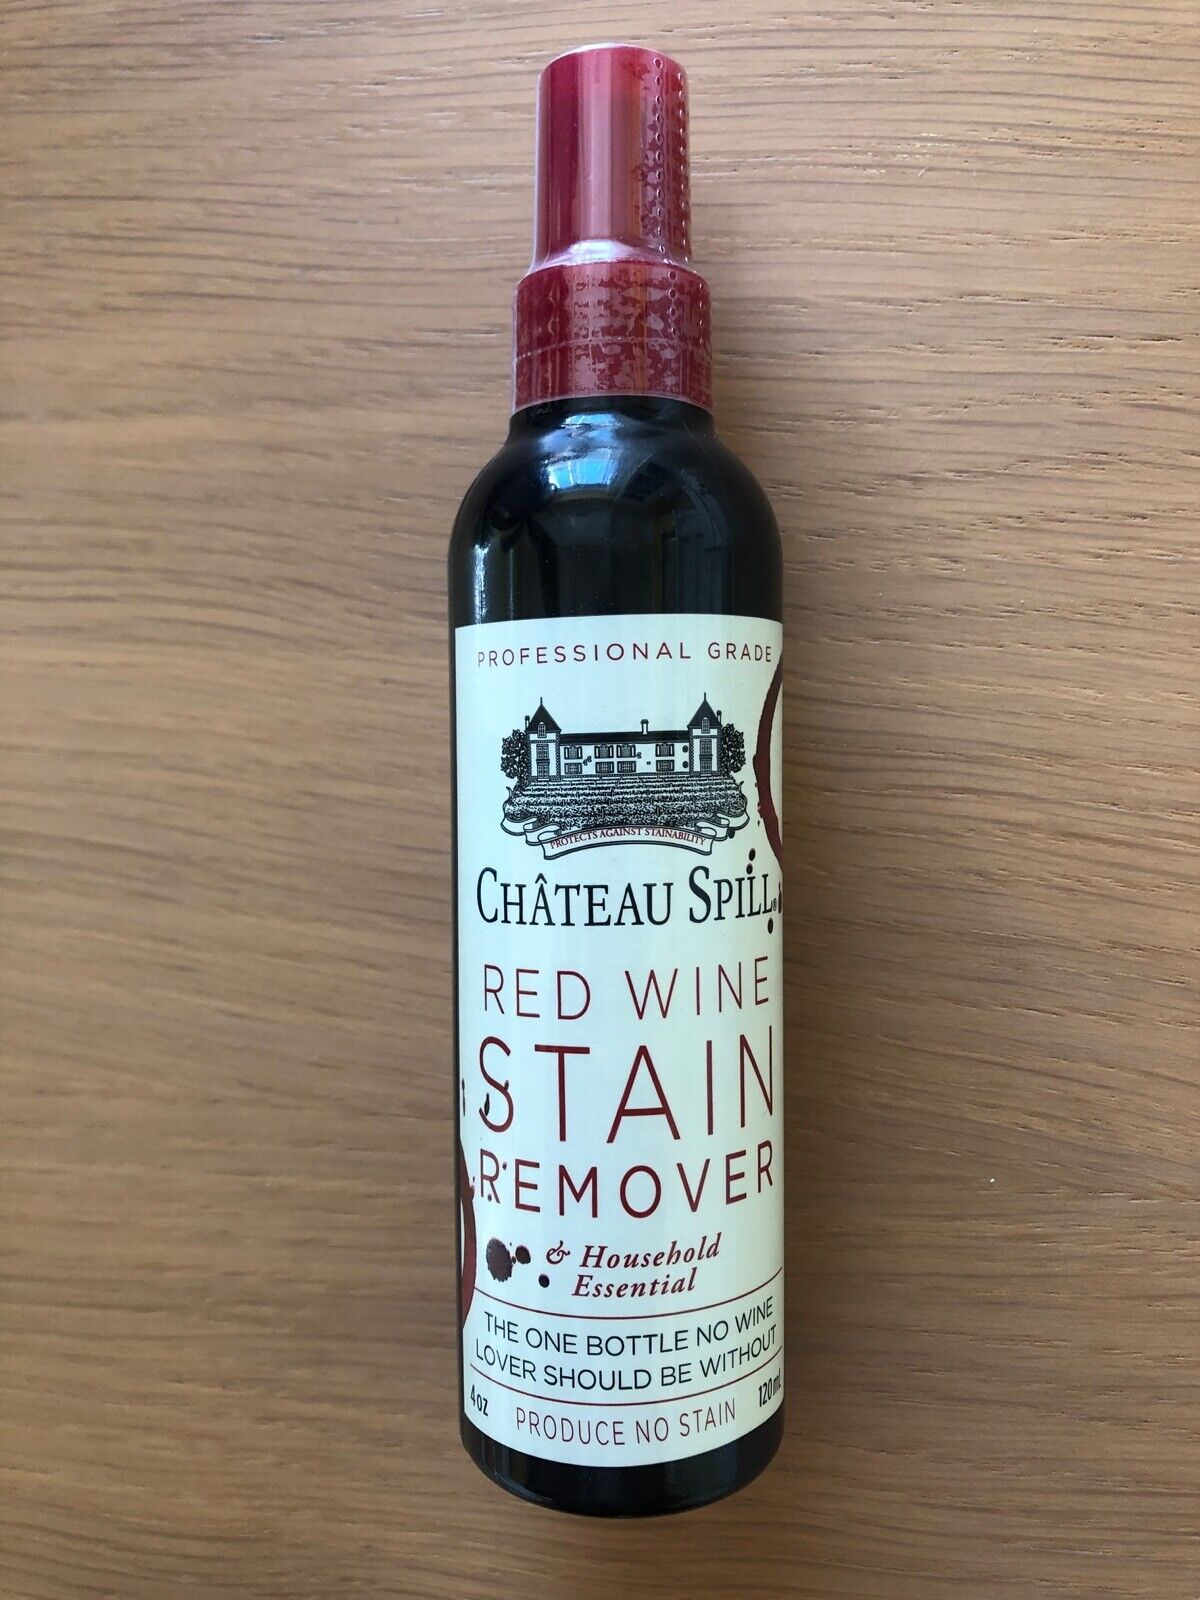 Chateau Spill Red Wine Stain Remover 4 Ounce Spray Bottle 120ml For Sale Online Ebay